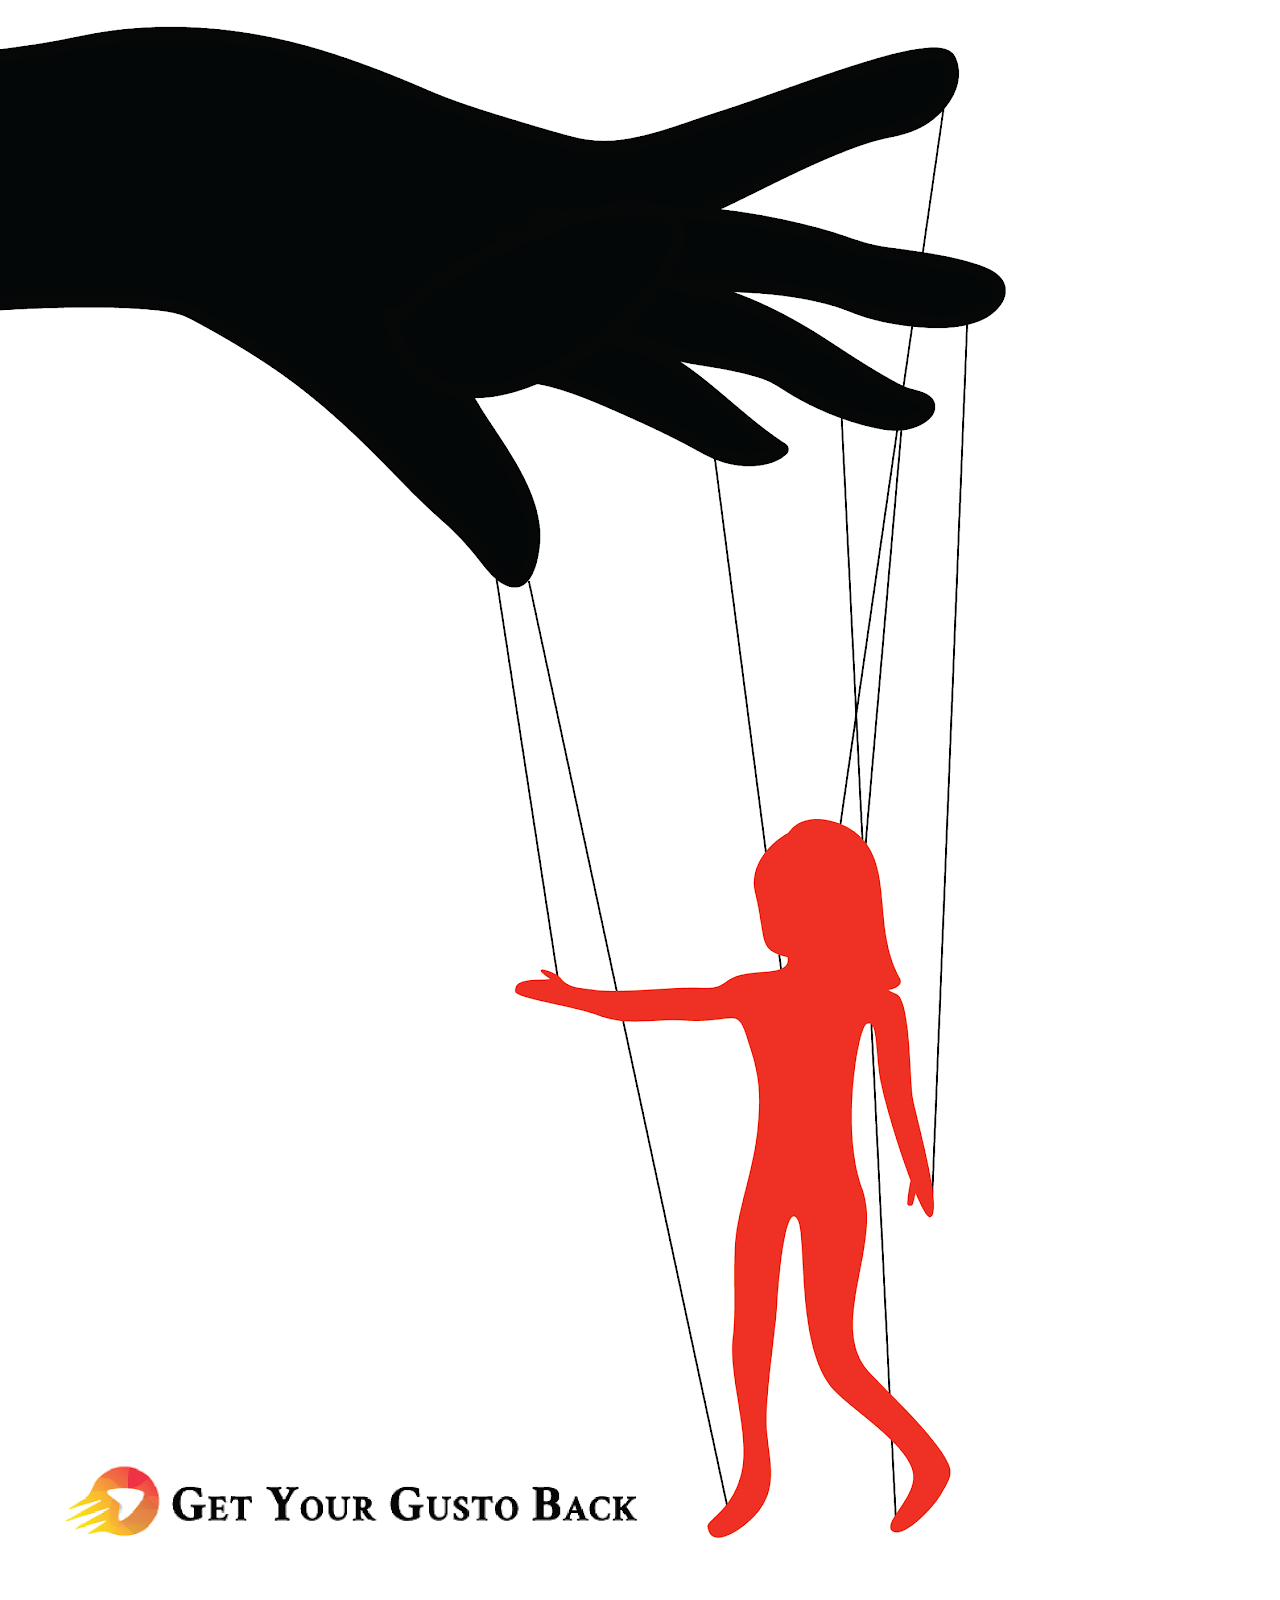 Becoming Someone's Puppet | Get Your Gusto Back